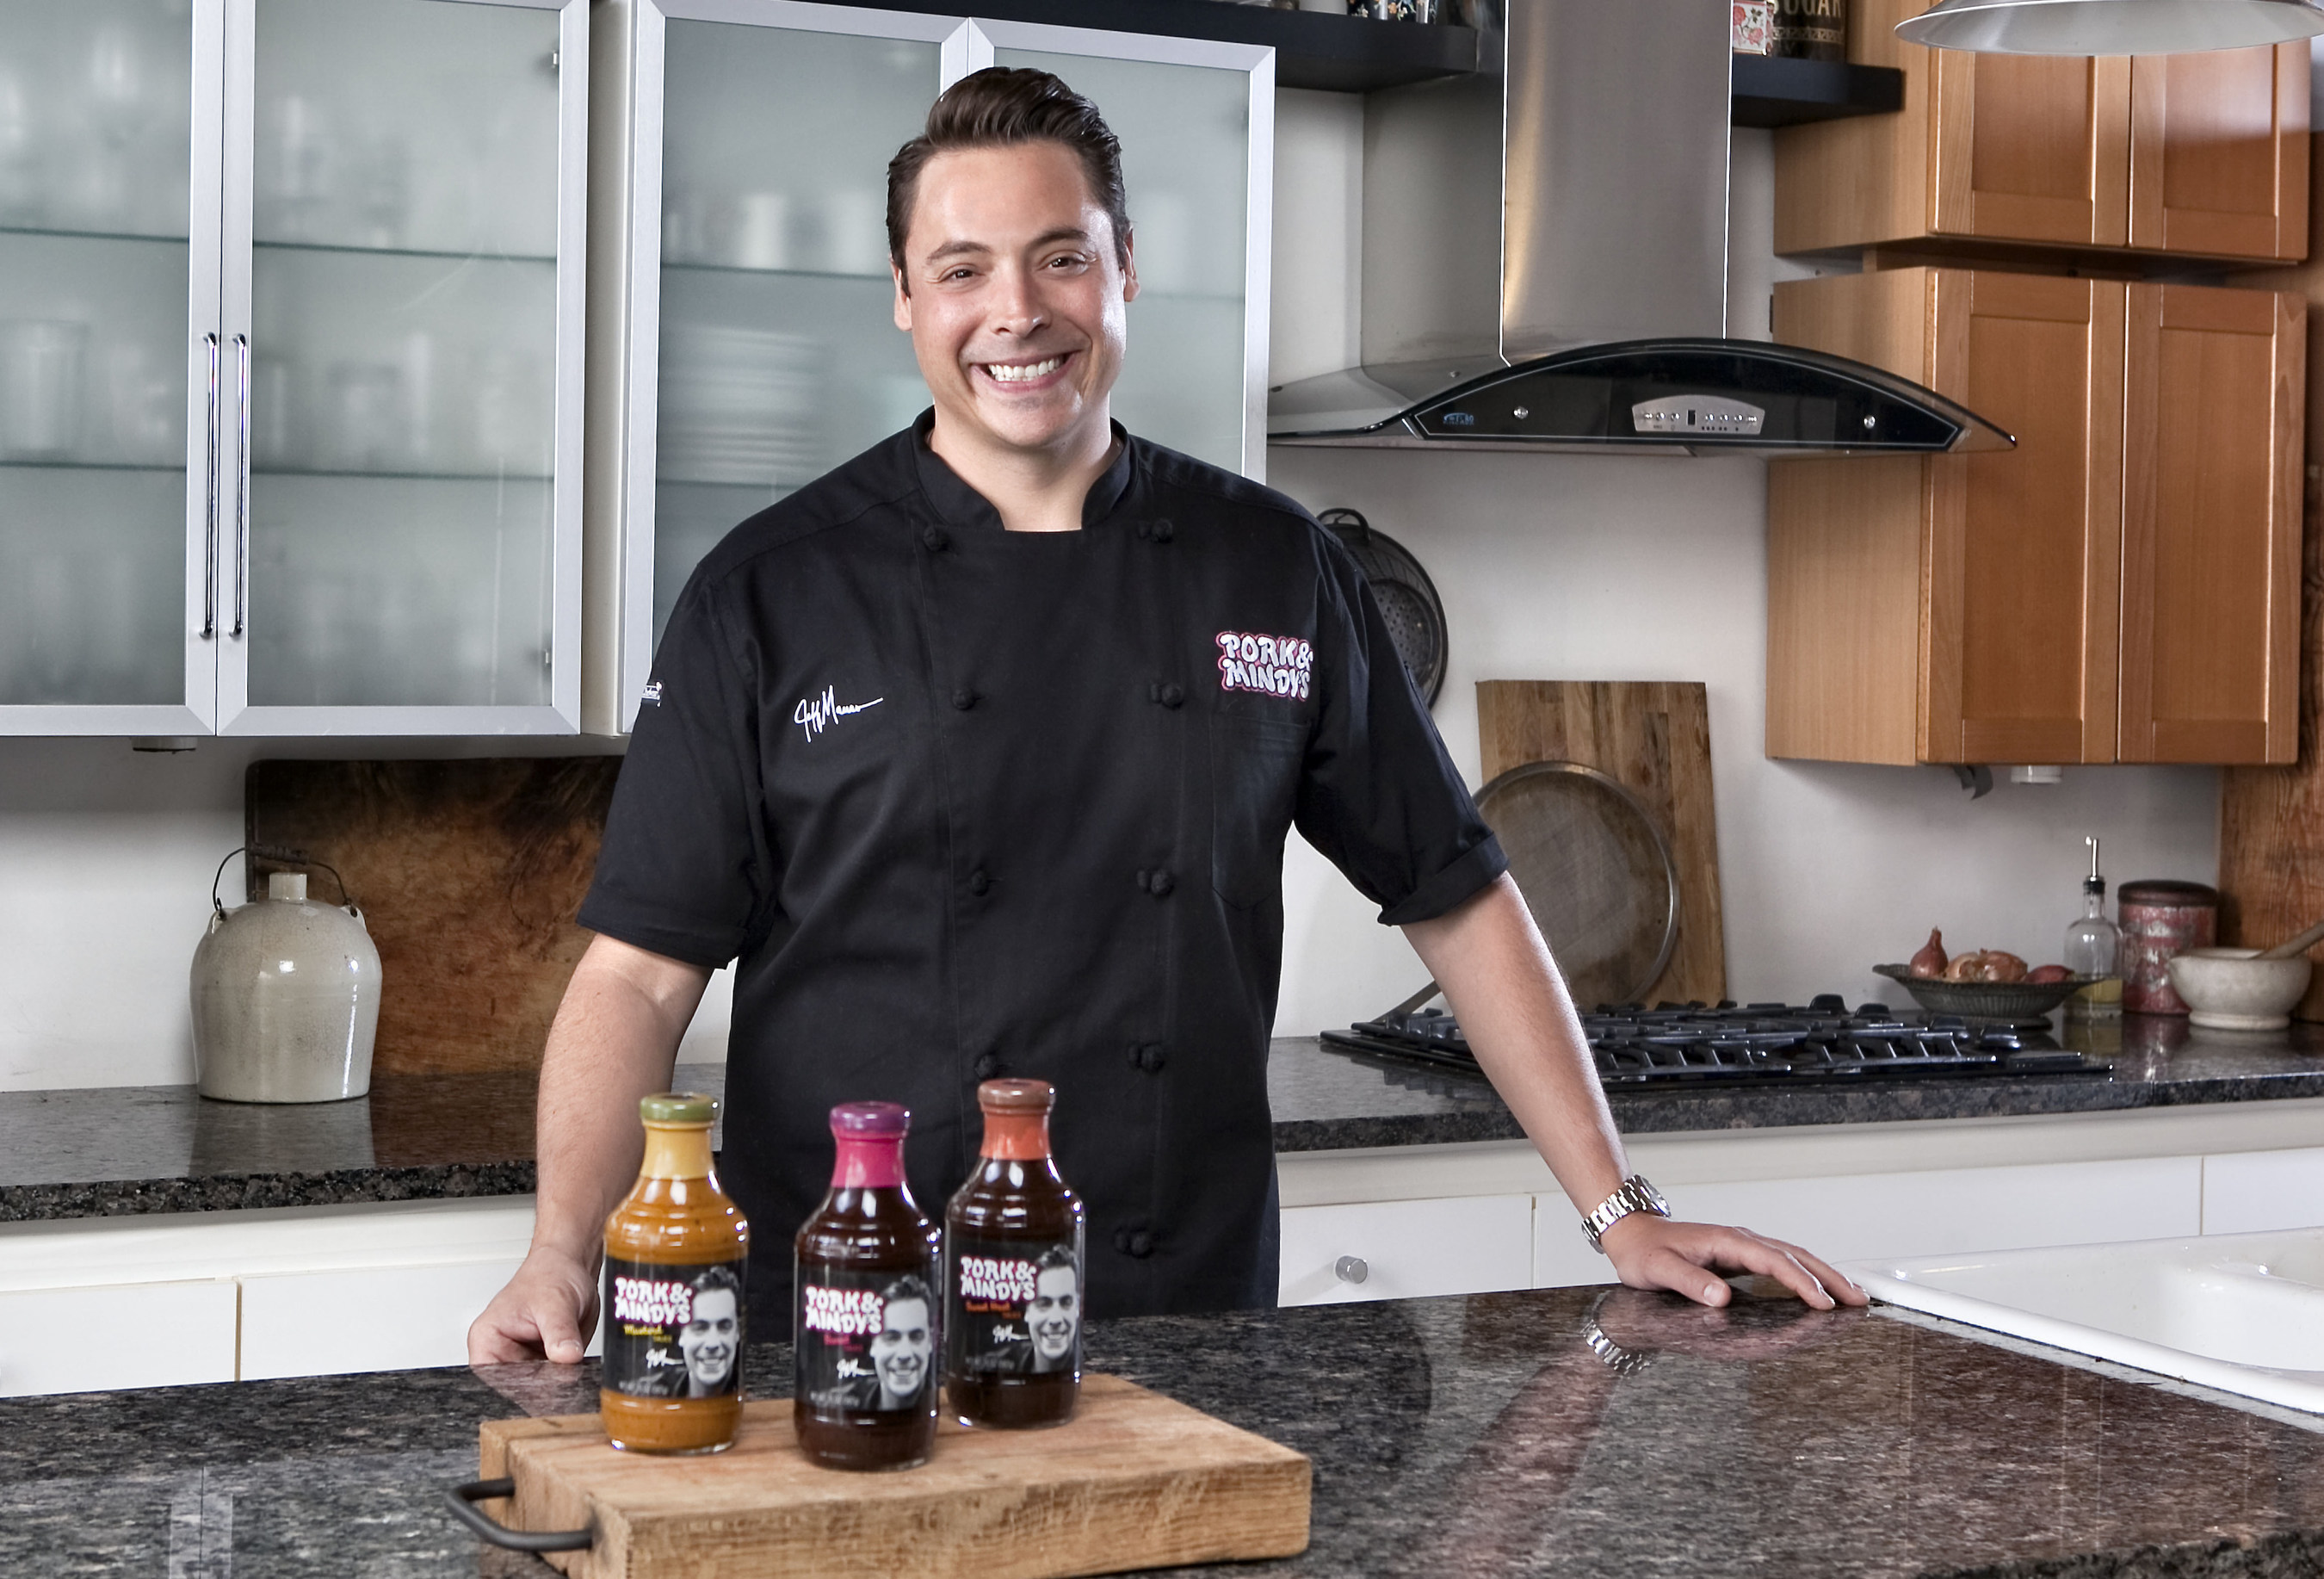 Food Network Star of Sandwich King and The Kitchen Debuts Line of Innovative Sauces Just in Time for Summer Grilling Season